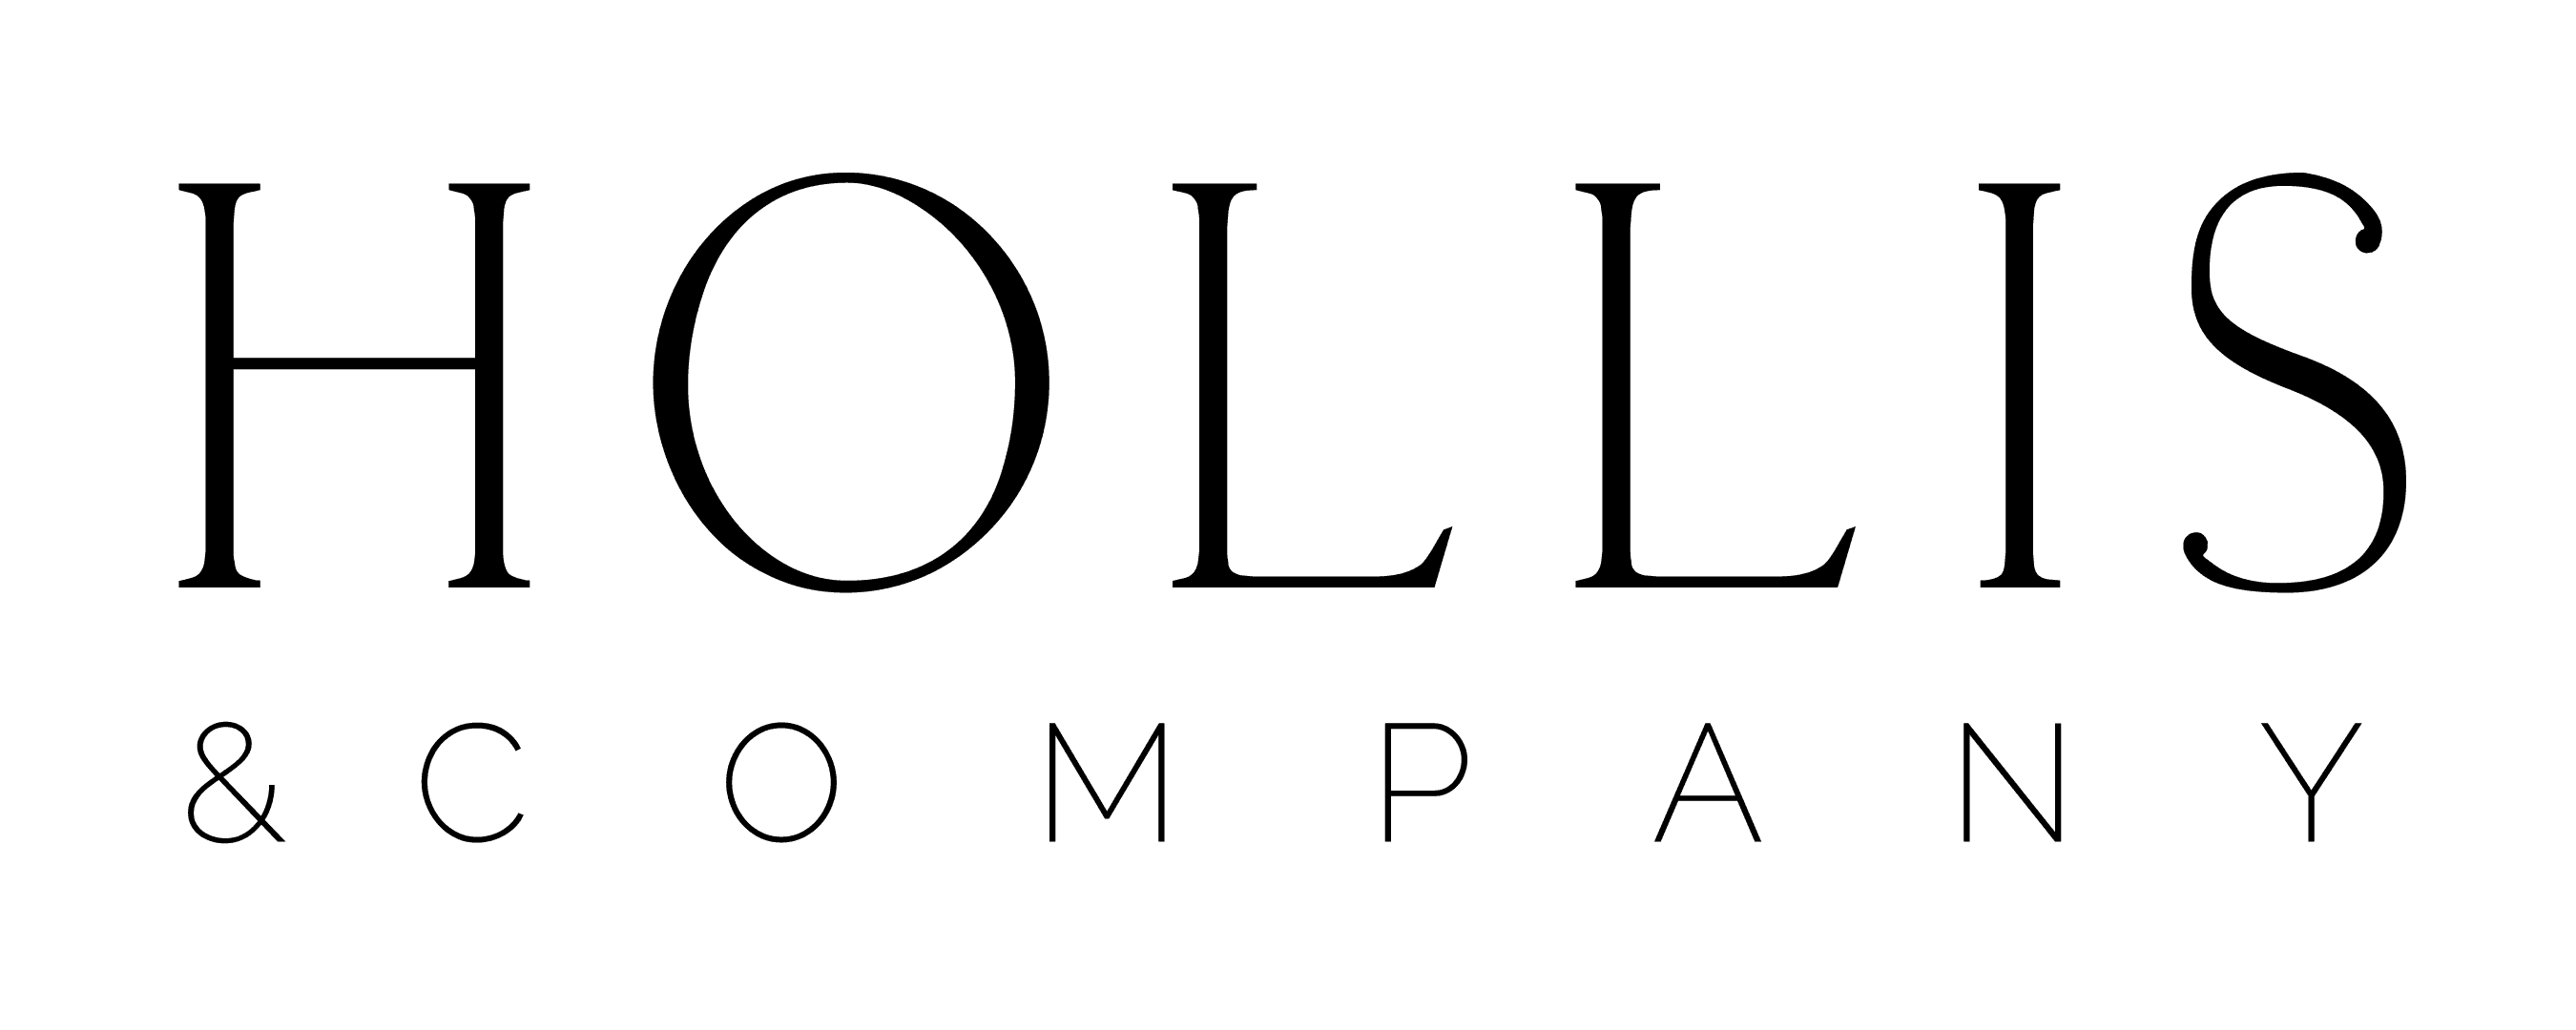 Hollis & Co.